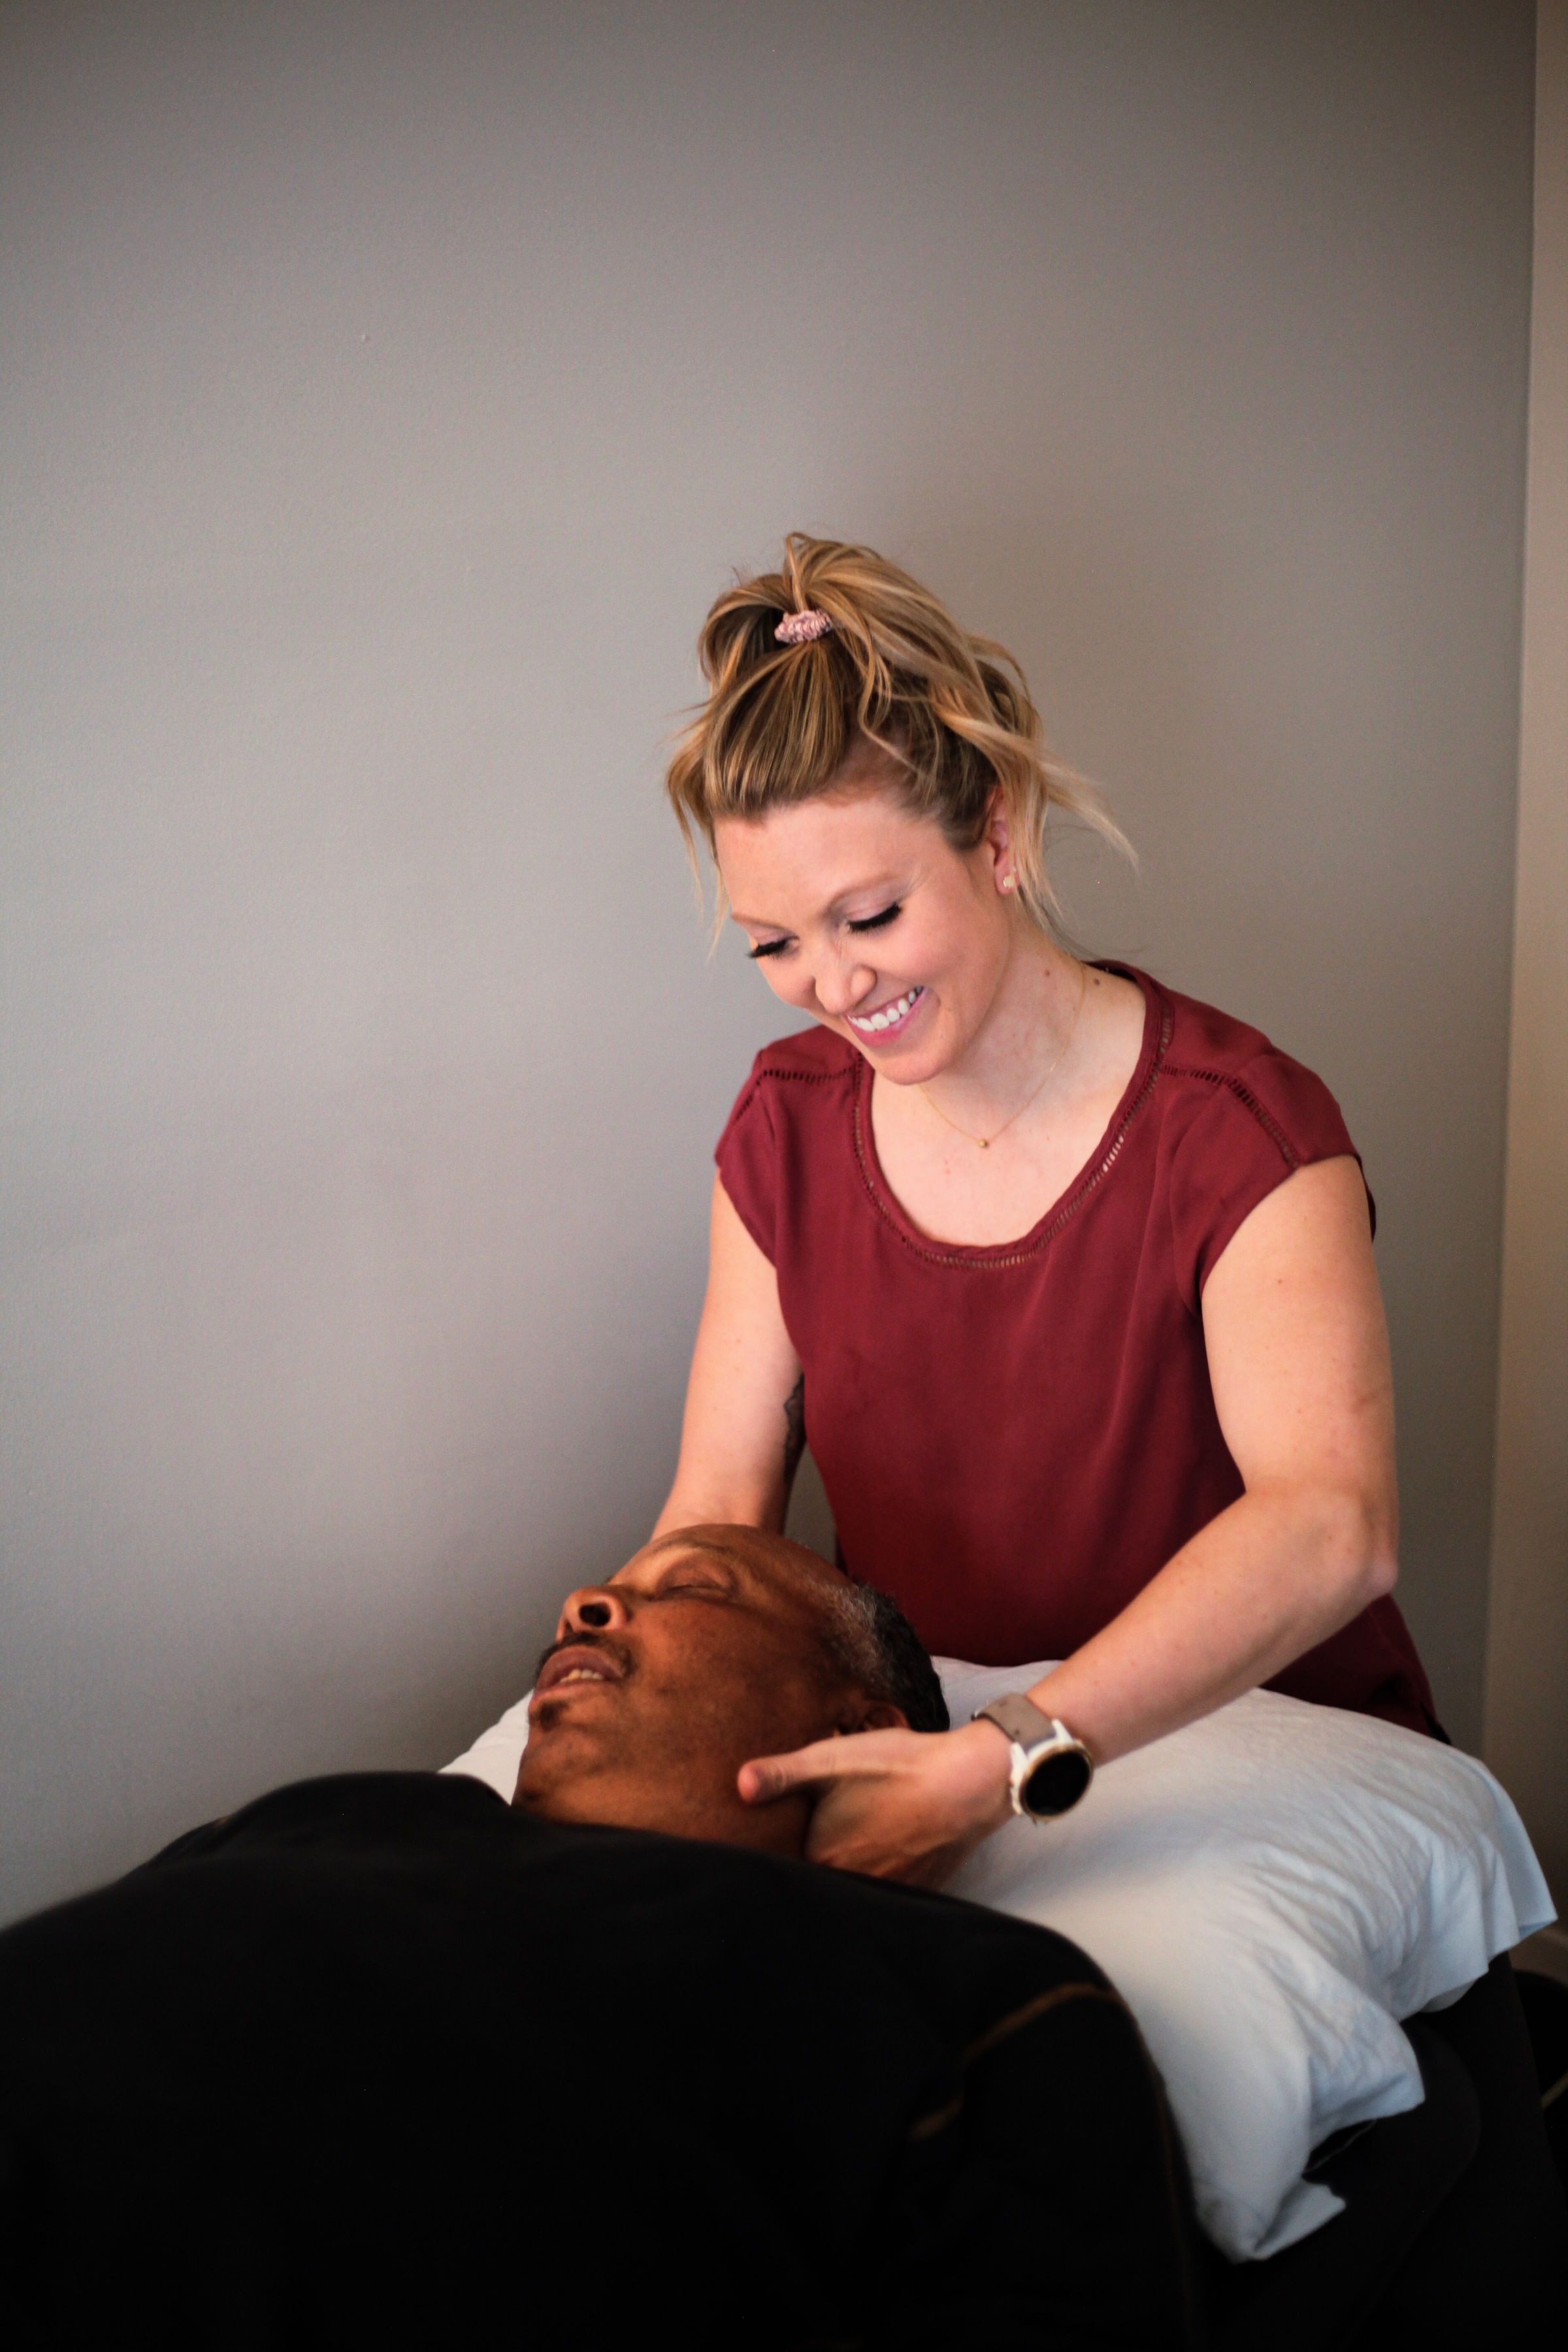 A physical therapist treating a patient.